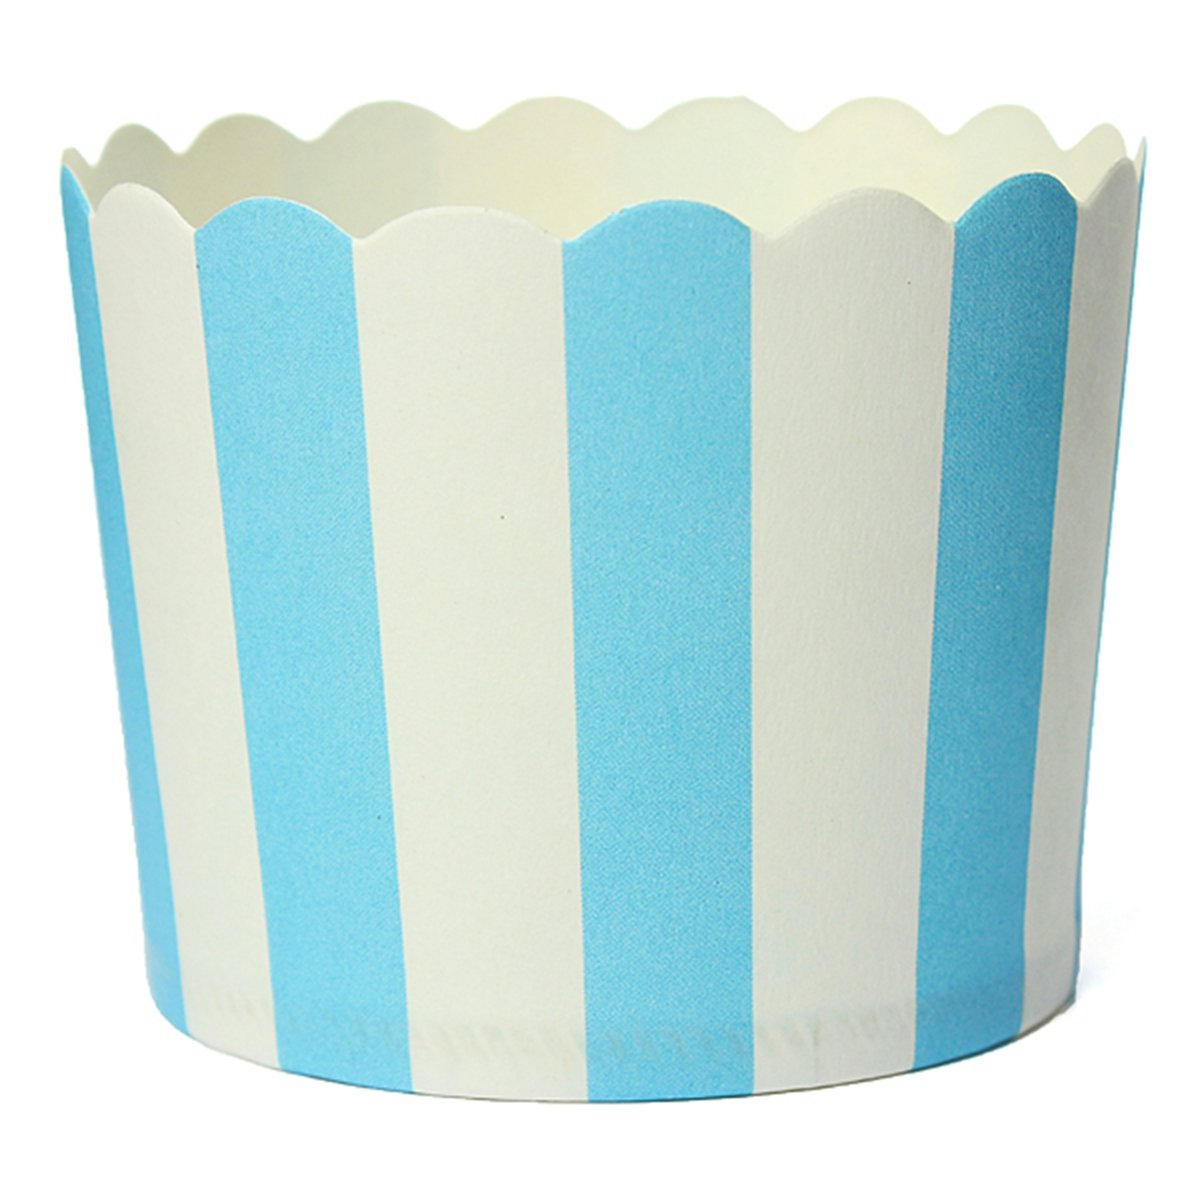 50x cupcake paper cake case baking cups liner muffin Liner 5 50 x 1 32